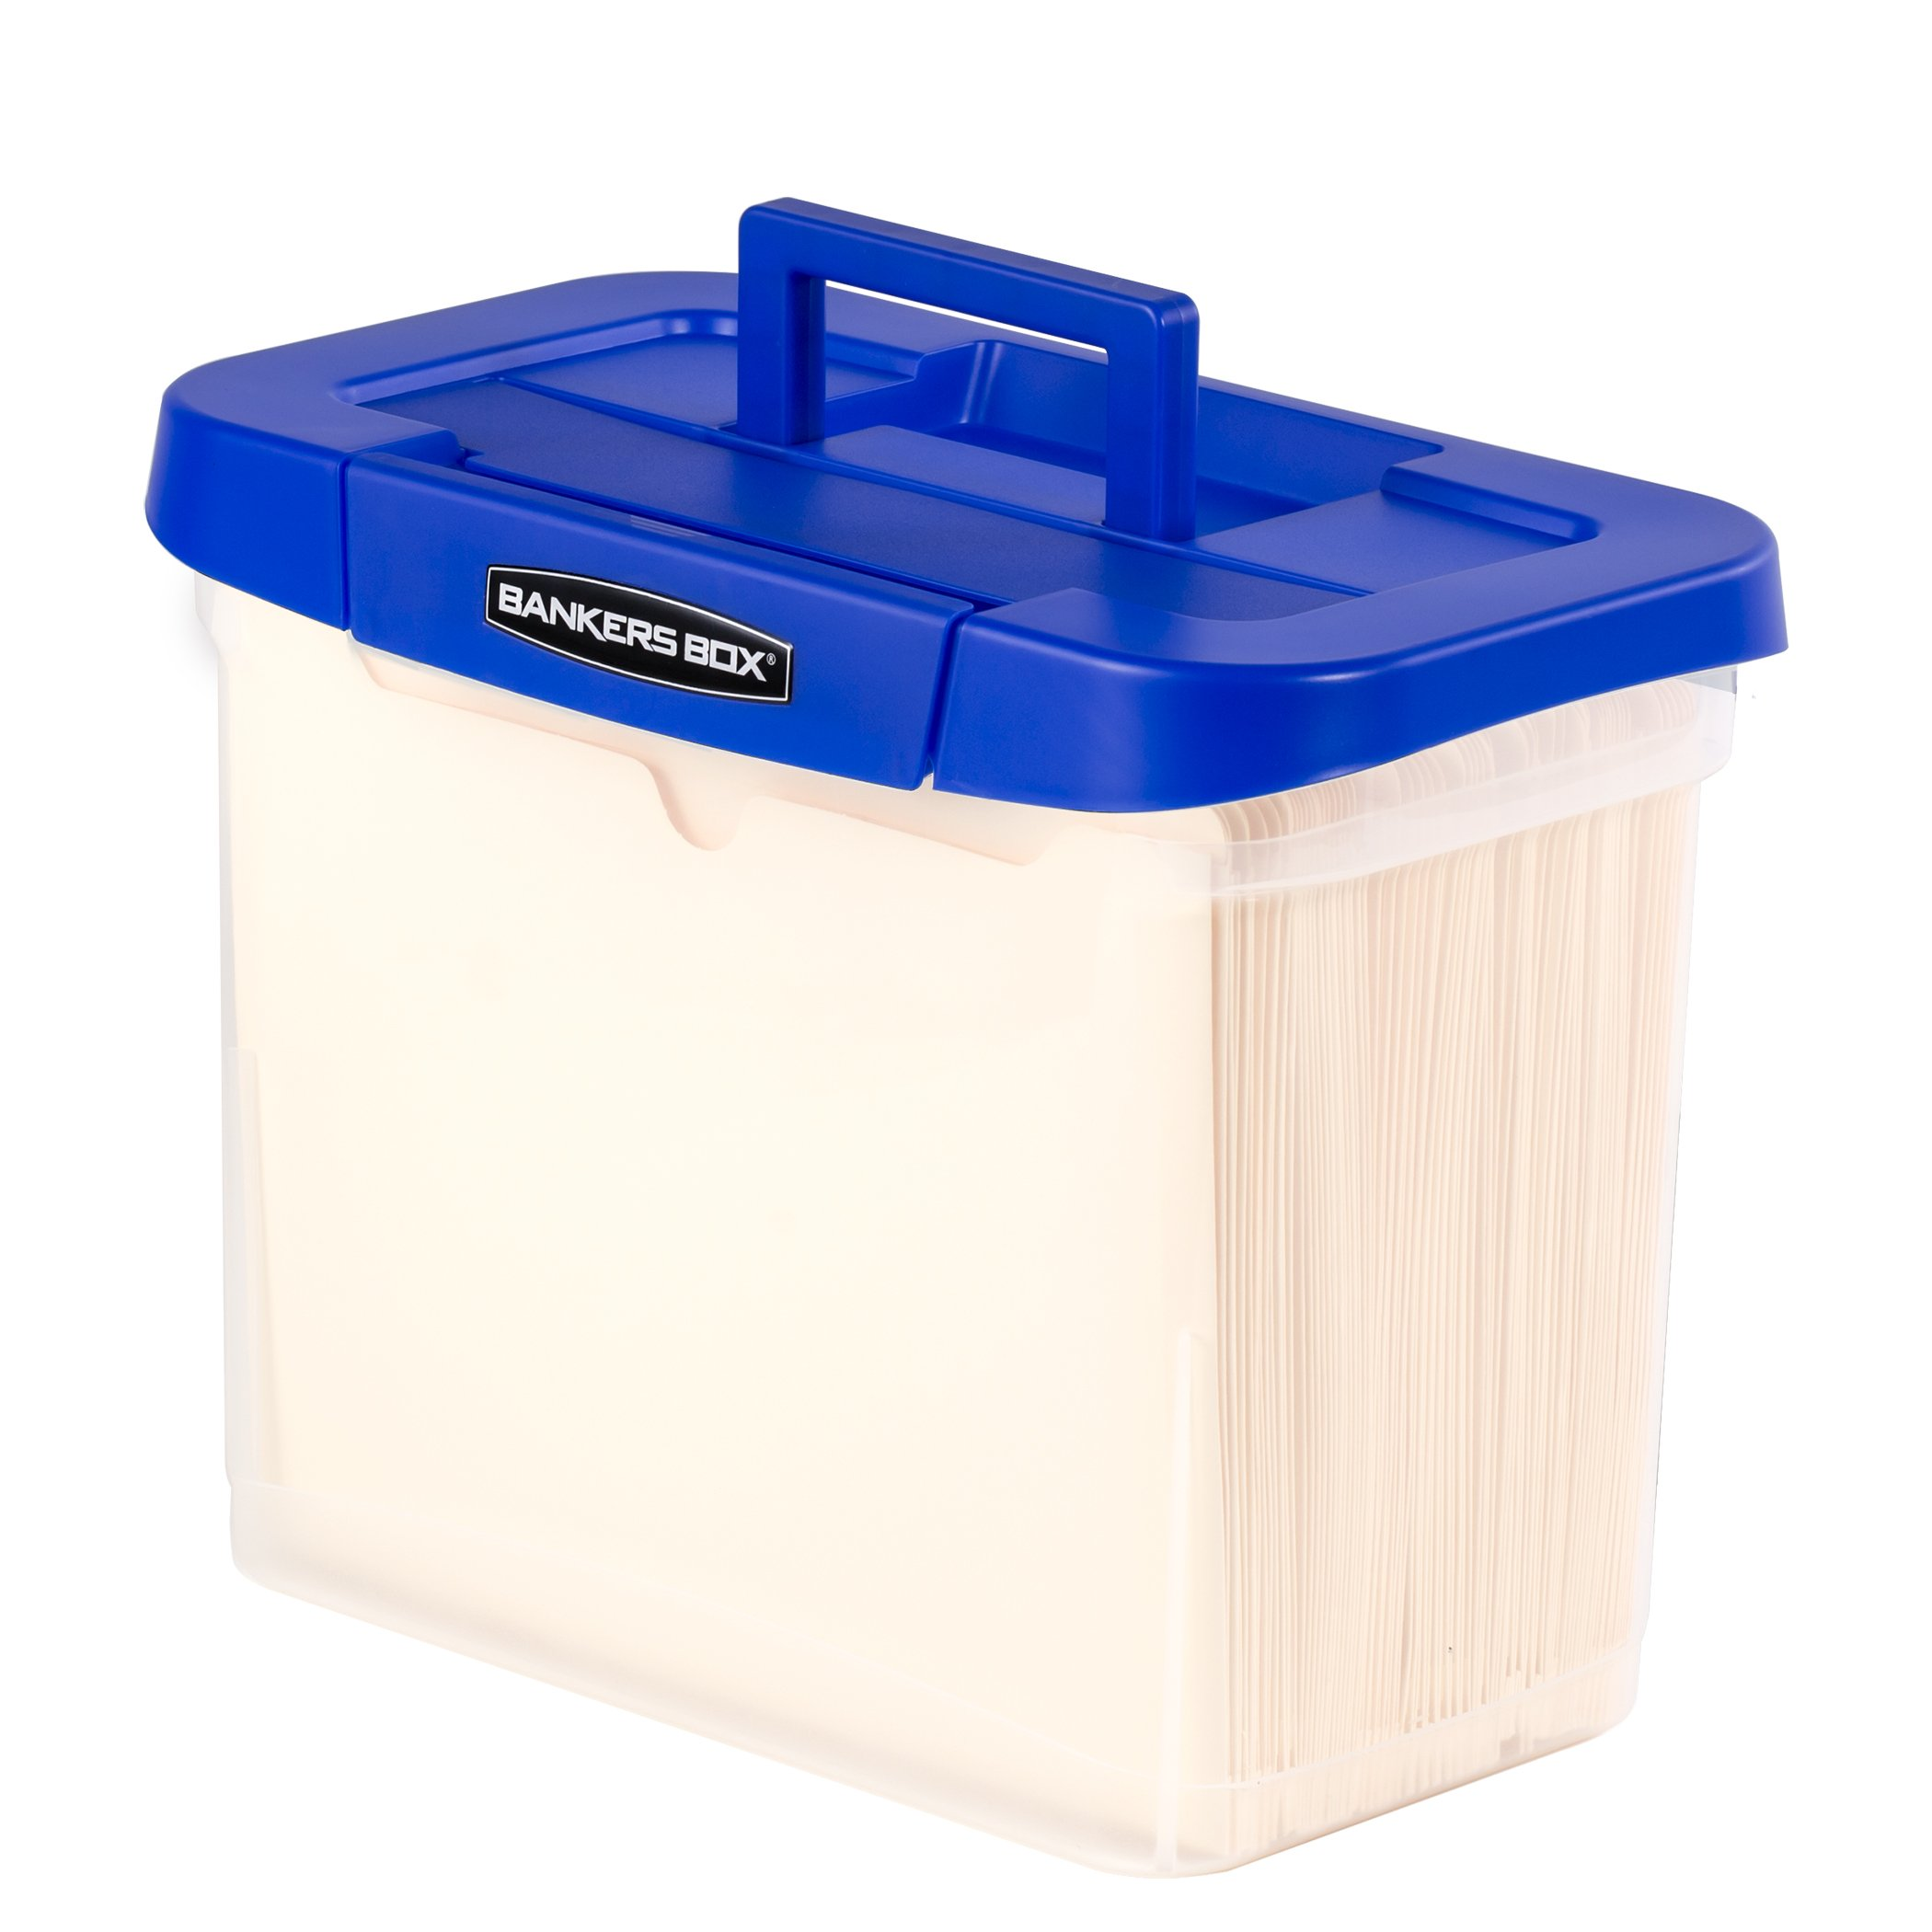 Bankers Box Heavy Duty Portable Plastic File Box with Hanging Rails, Letter, 1 Pack (0086304) by Bankers Box